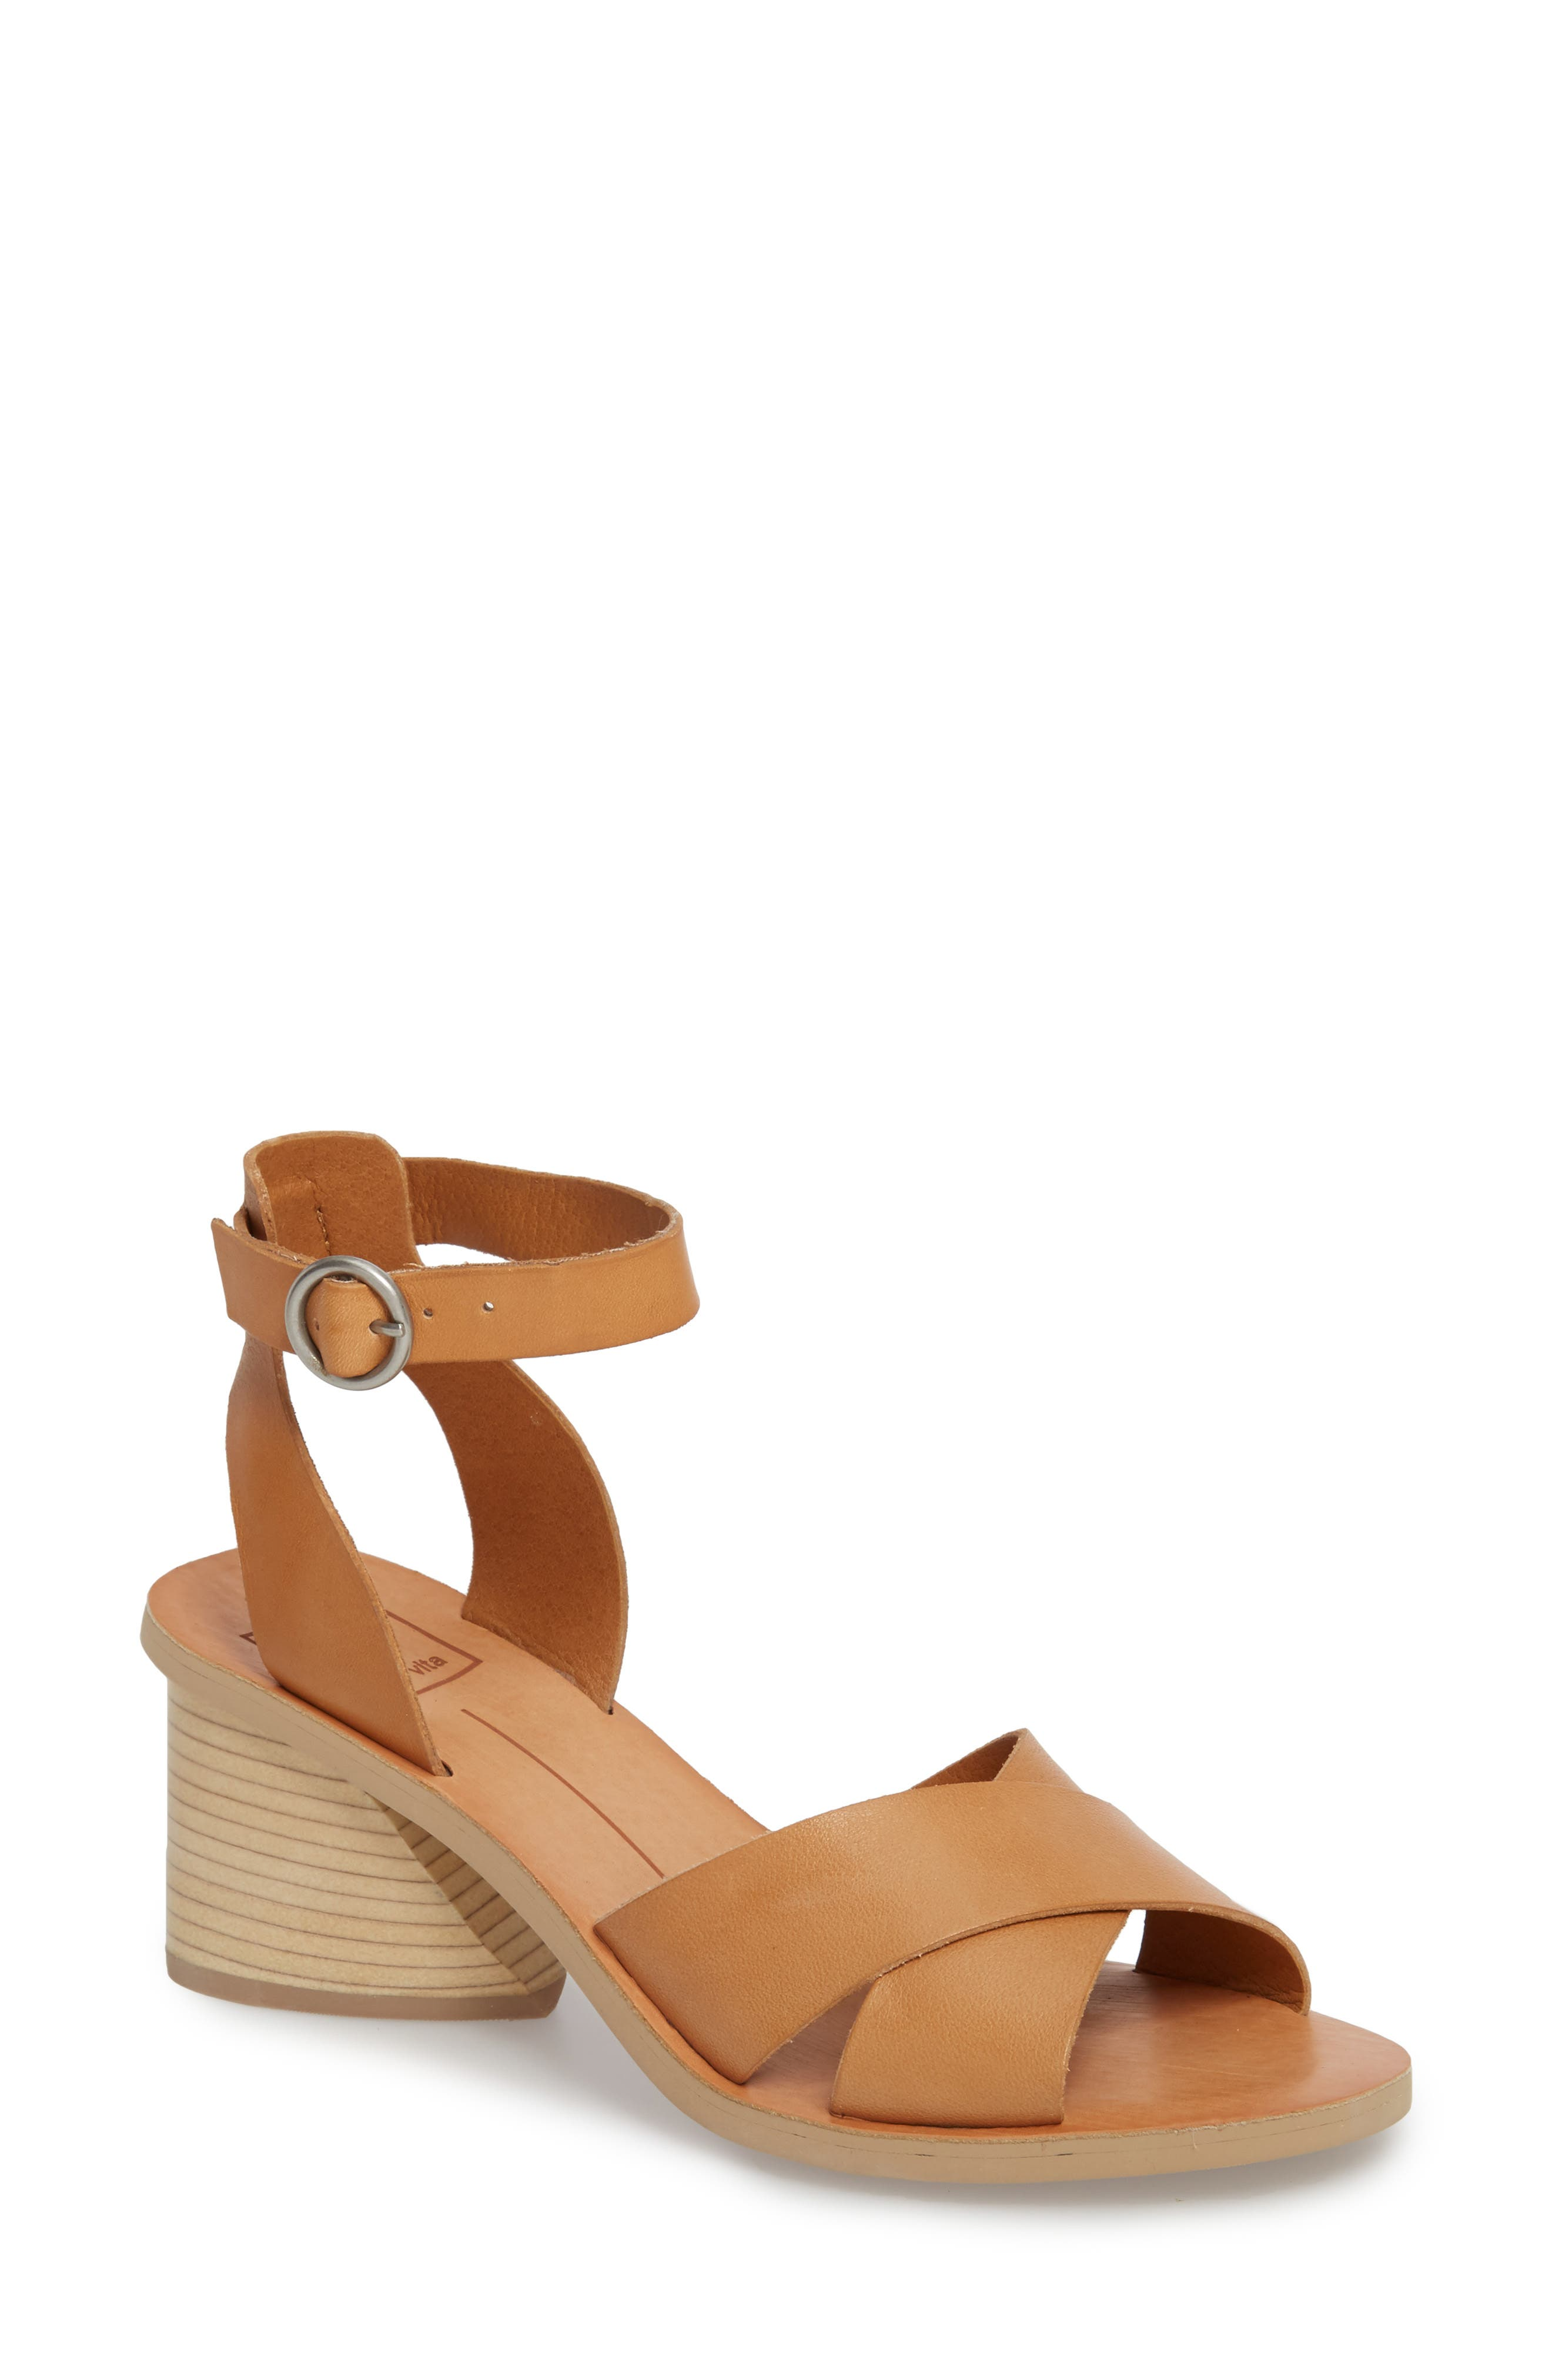 Roman Flared Heel Sandal,                         Main,                         color, Caramel Leather